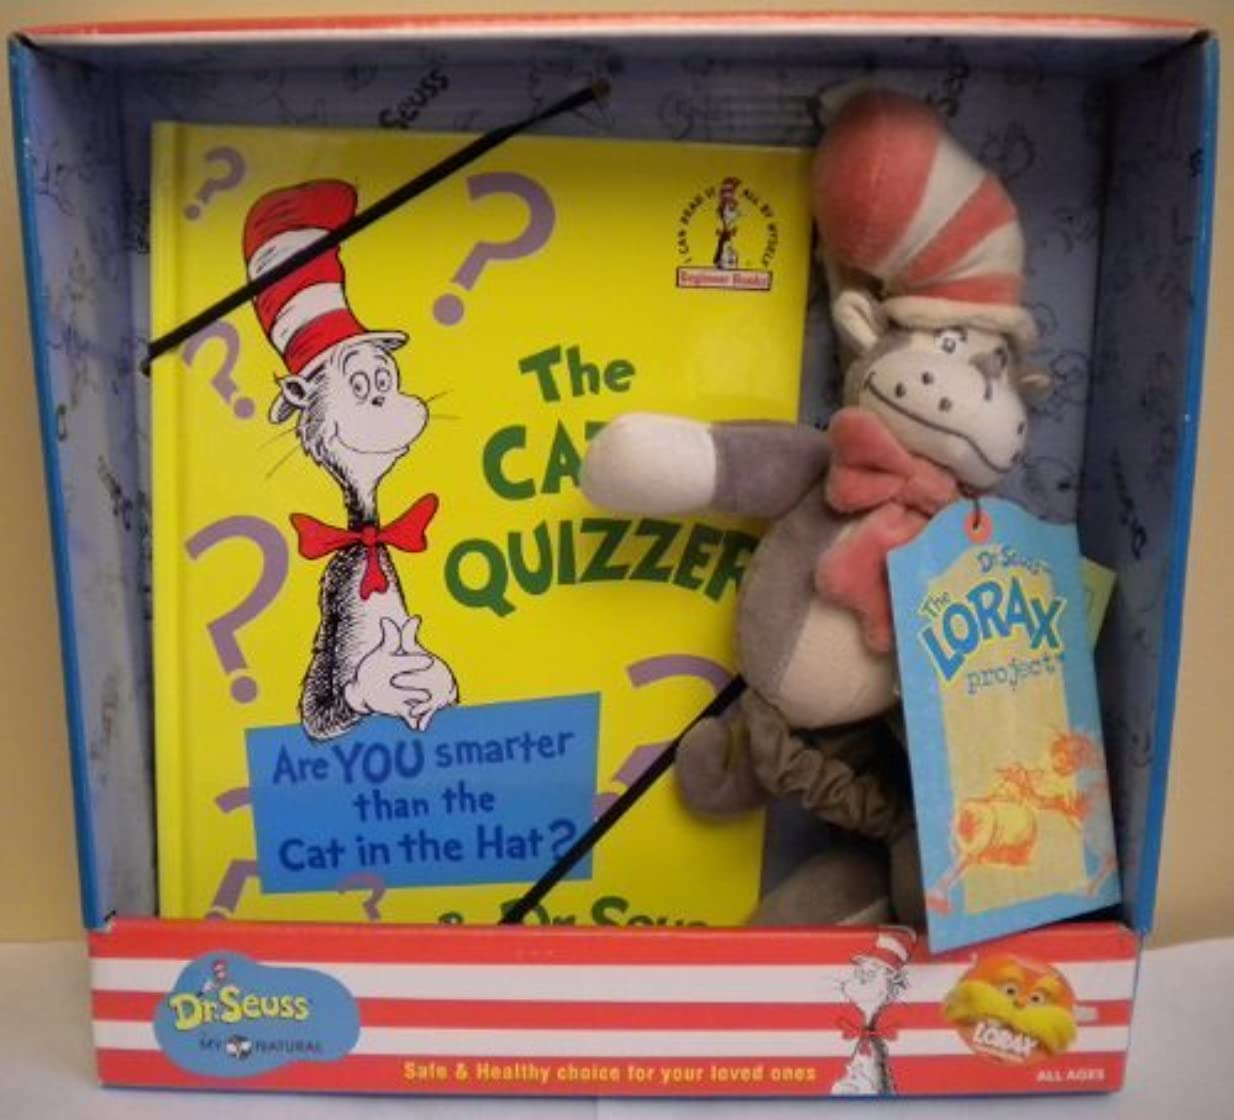 コック付き添い人遠征Dr. Seuss By My Natural Stroller Cat in the Hat Doll and Book by Dr. Seuss